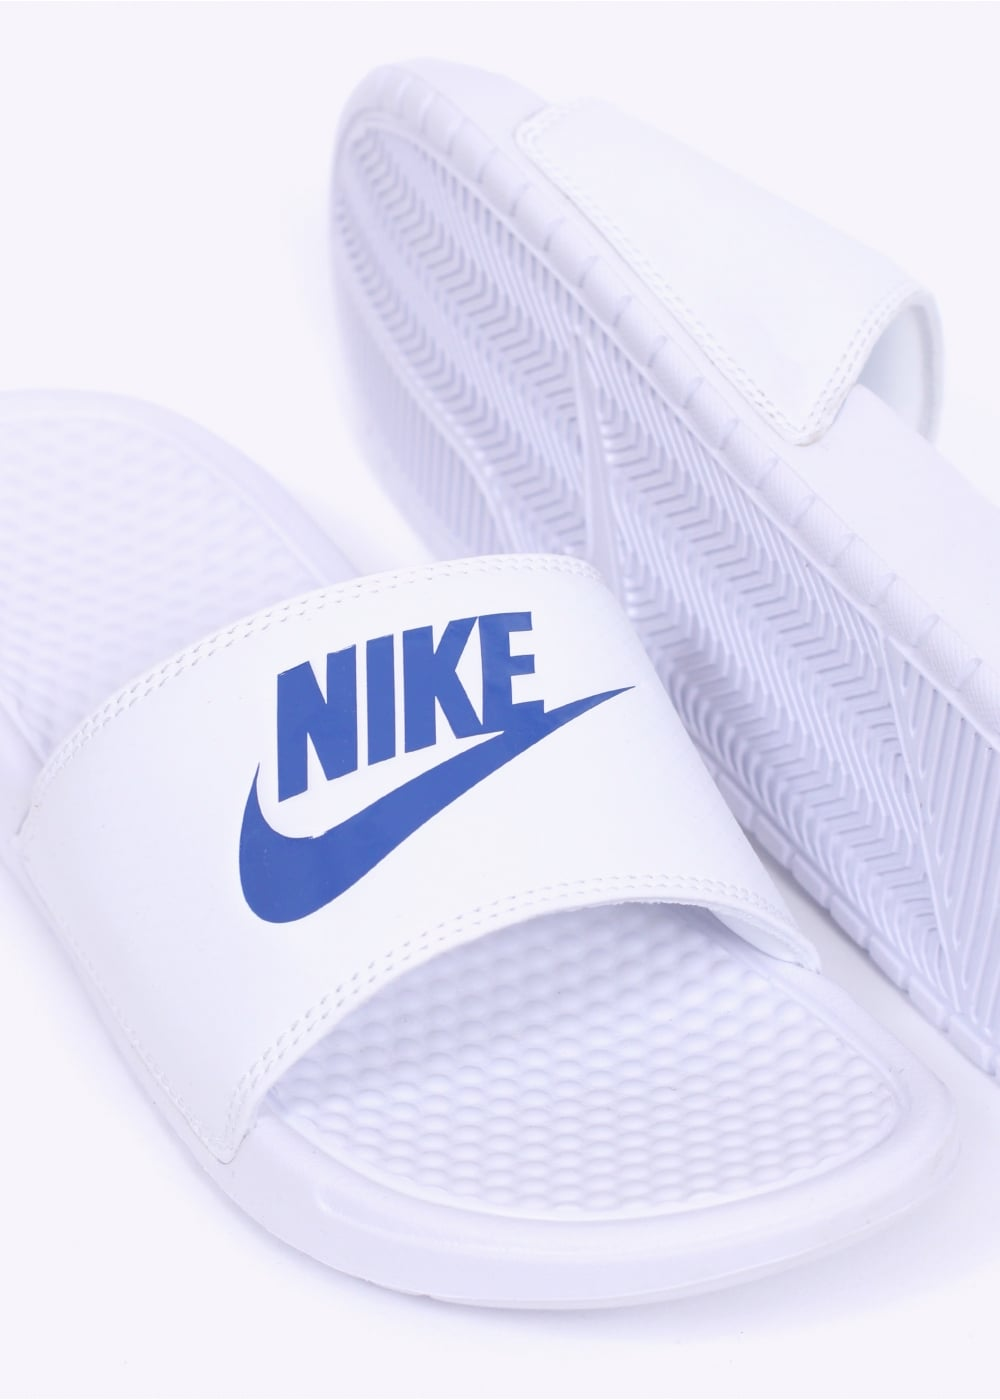 Shop the latest Nike at END. - the leading retailer of globally sourced menswear. New products added daily.